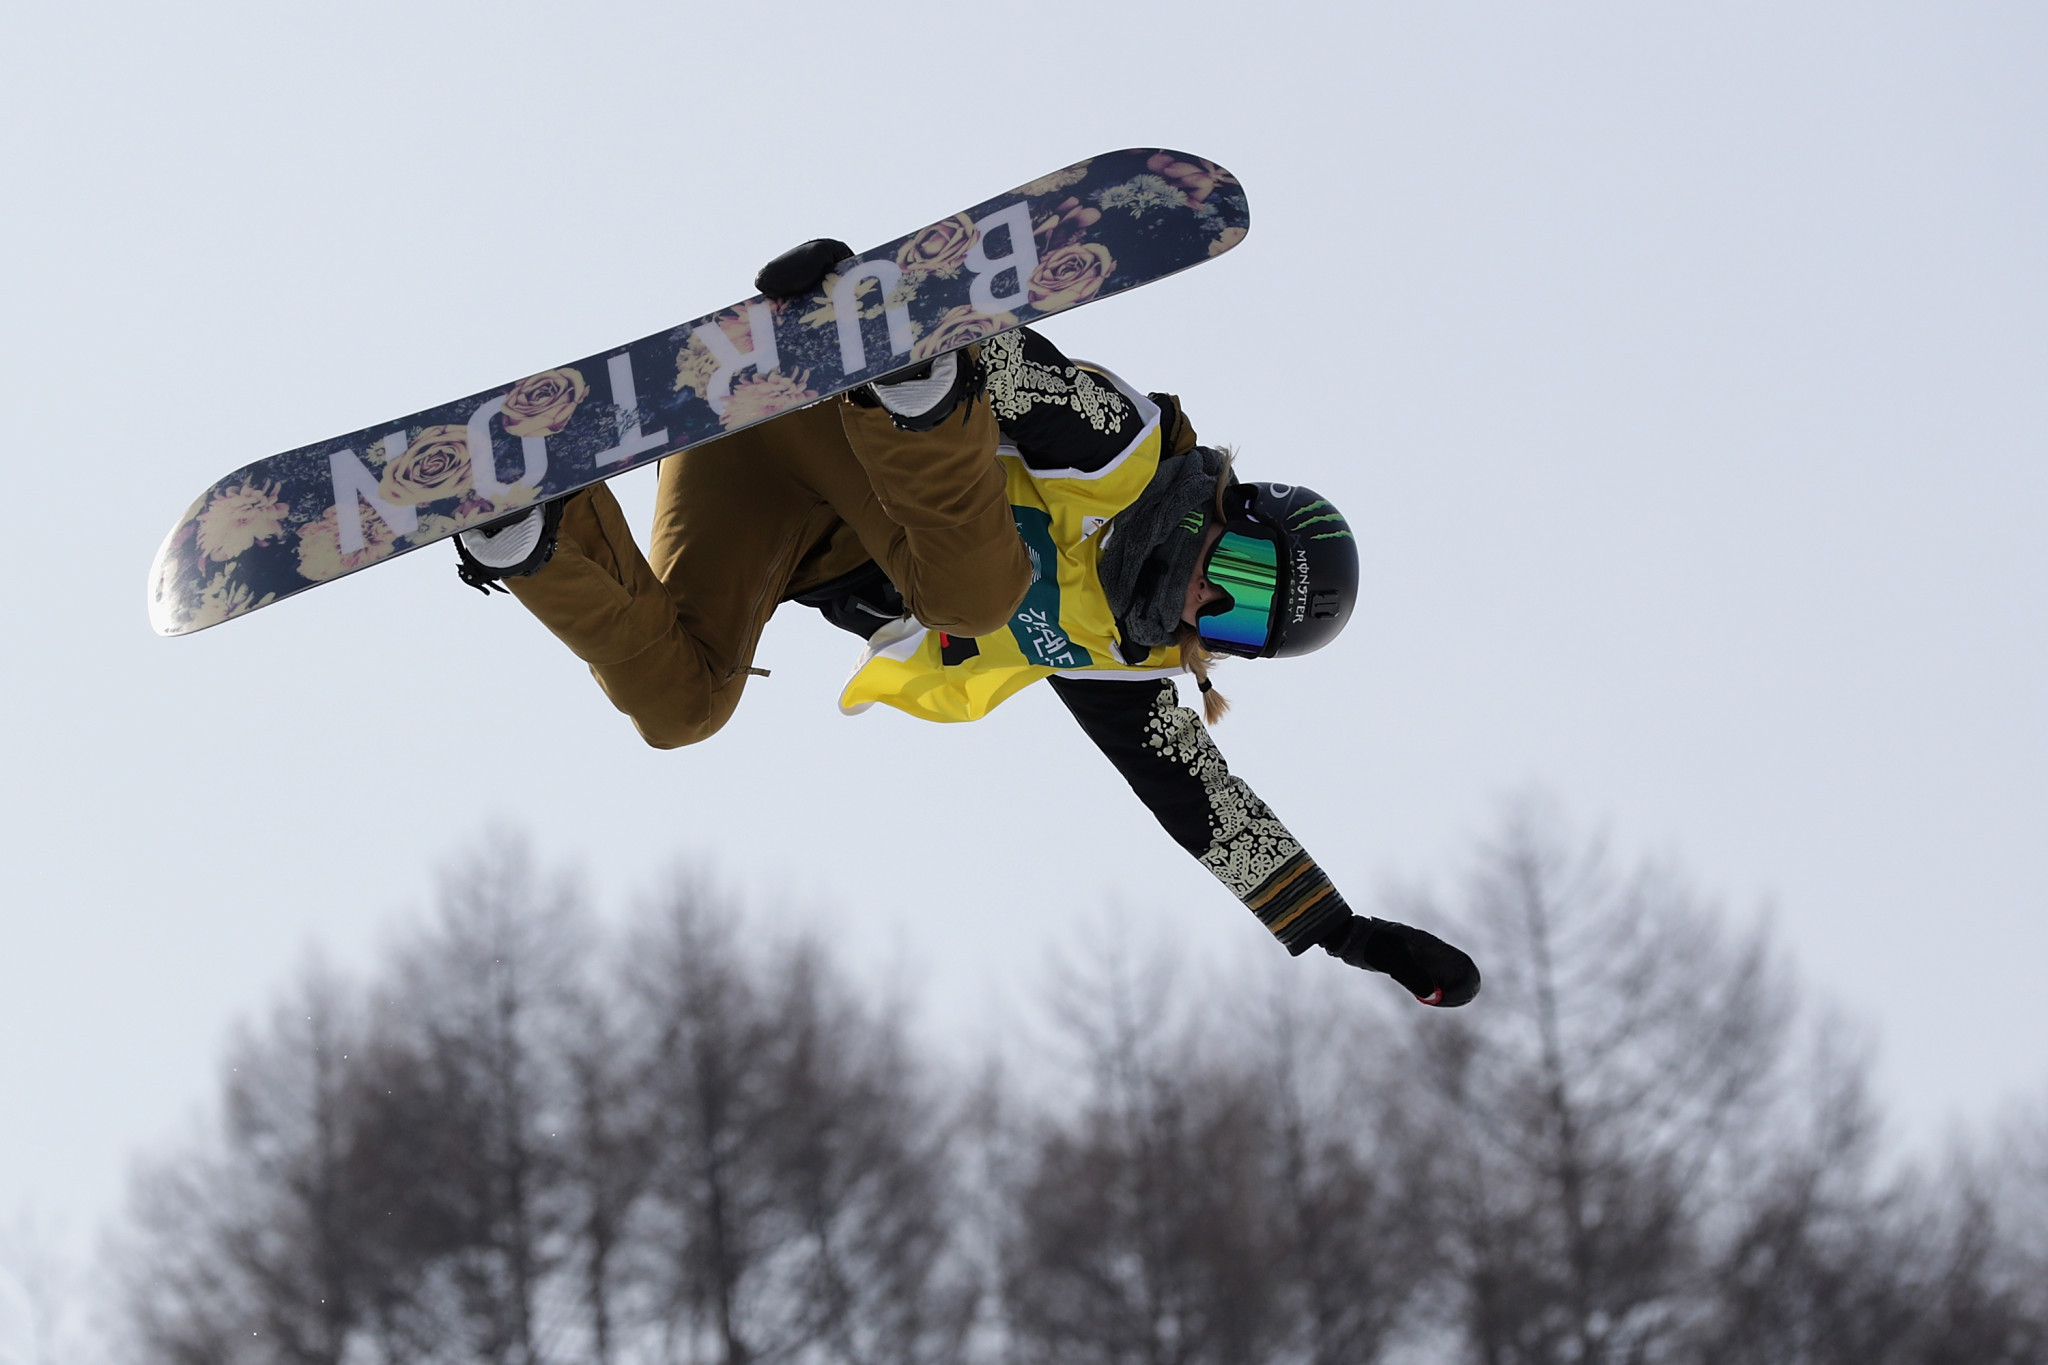 Chloe Kim topped her qualification heat at Copper Mountain ©Getty Images